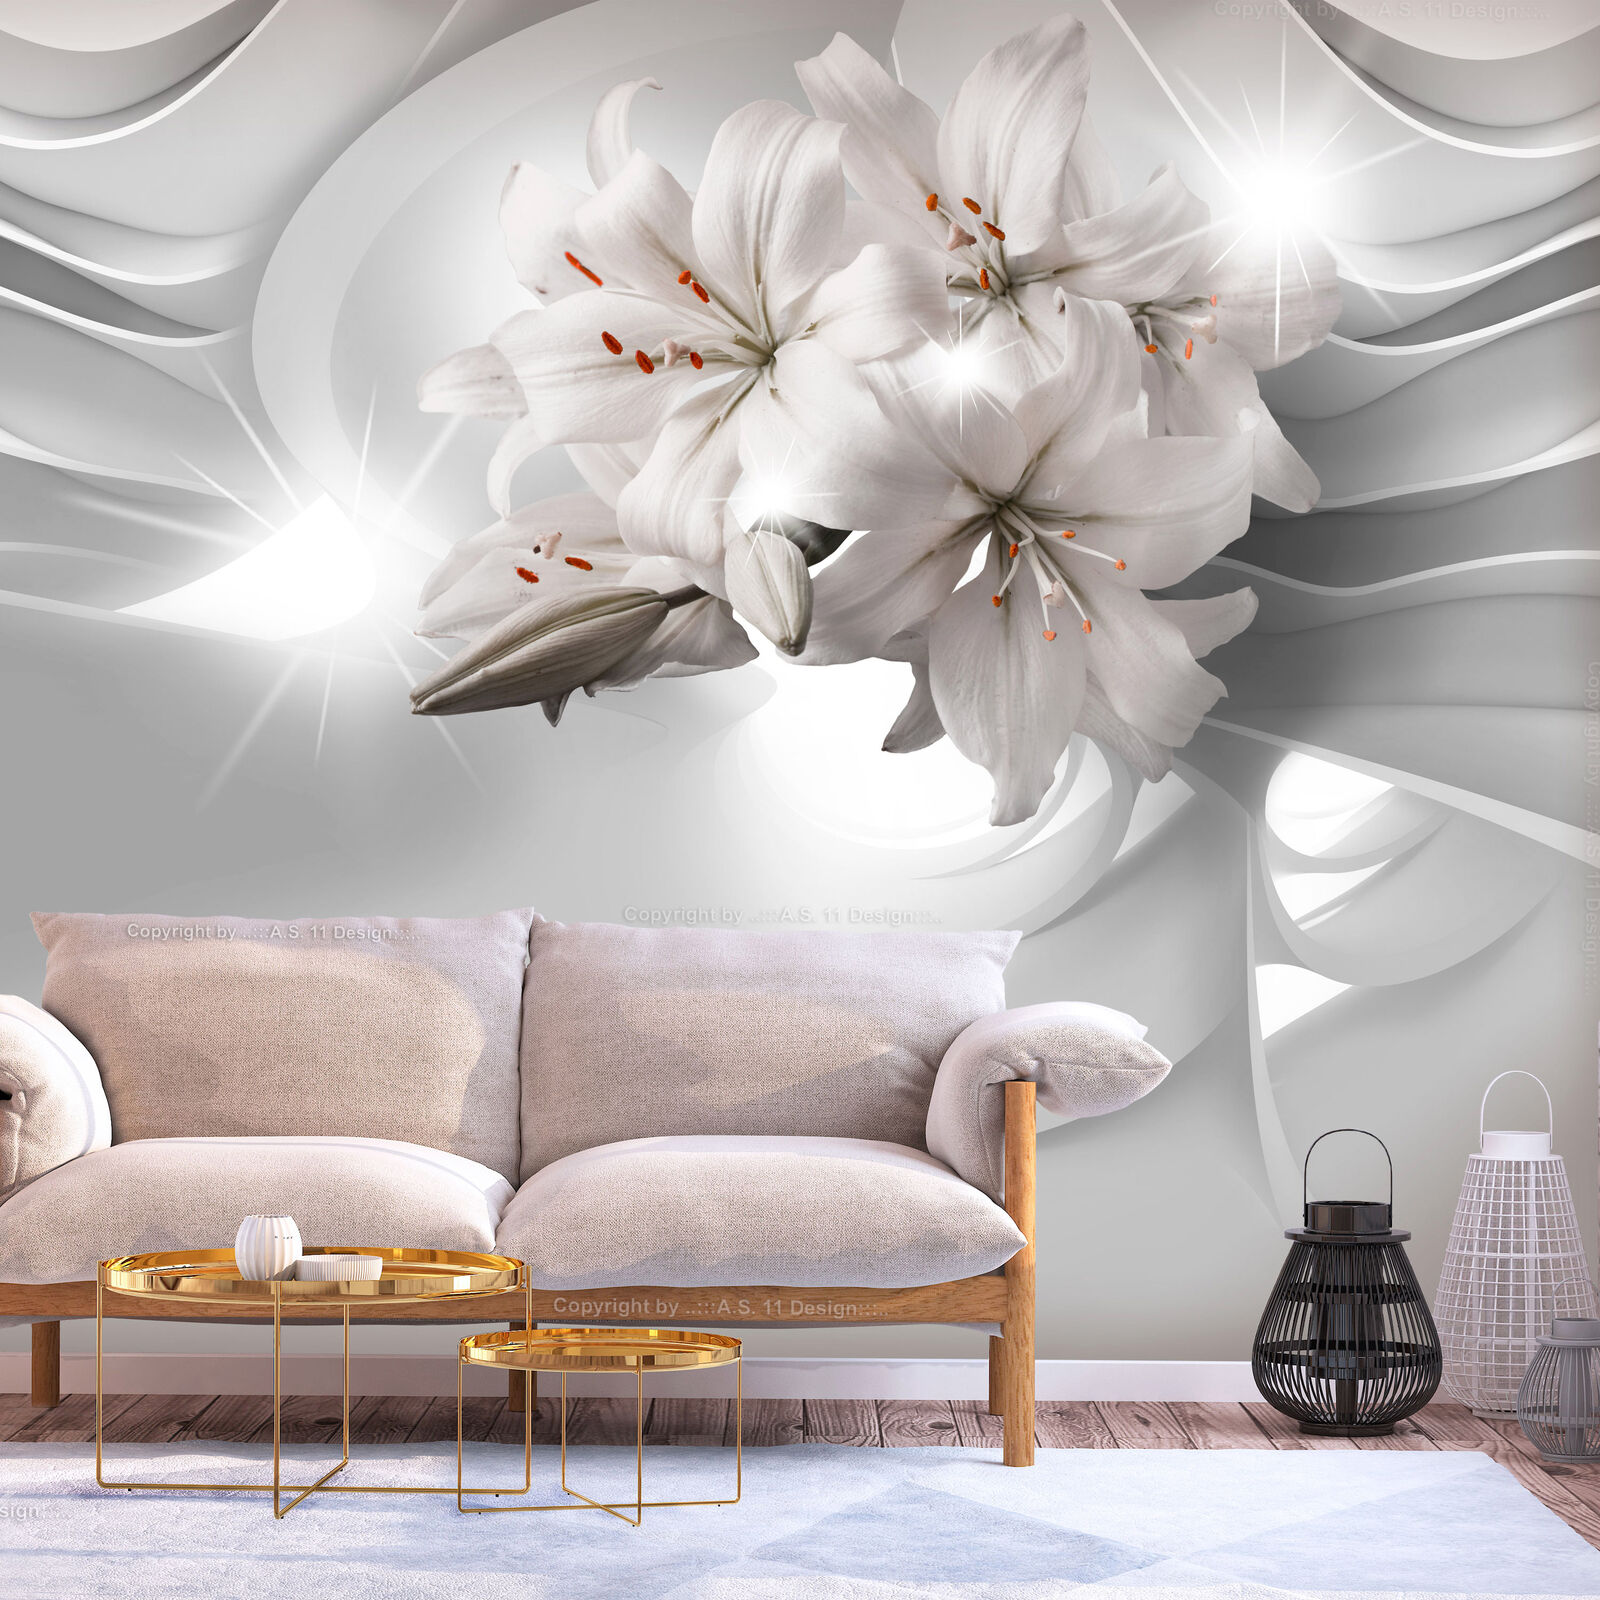 vlies fototapete 3d blumen lilien tapete xxl wandbild wandtapete b c 0203 a a eur 8 99. Black Bedroom Furniture Sets. Home Design Ideas